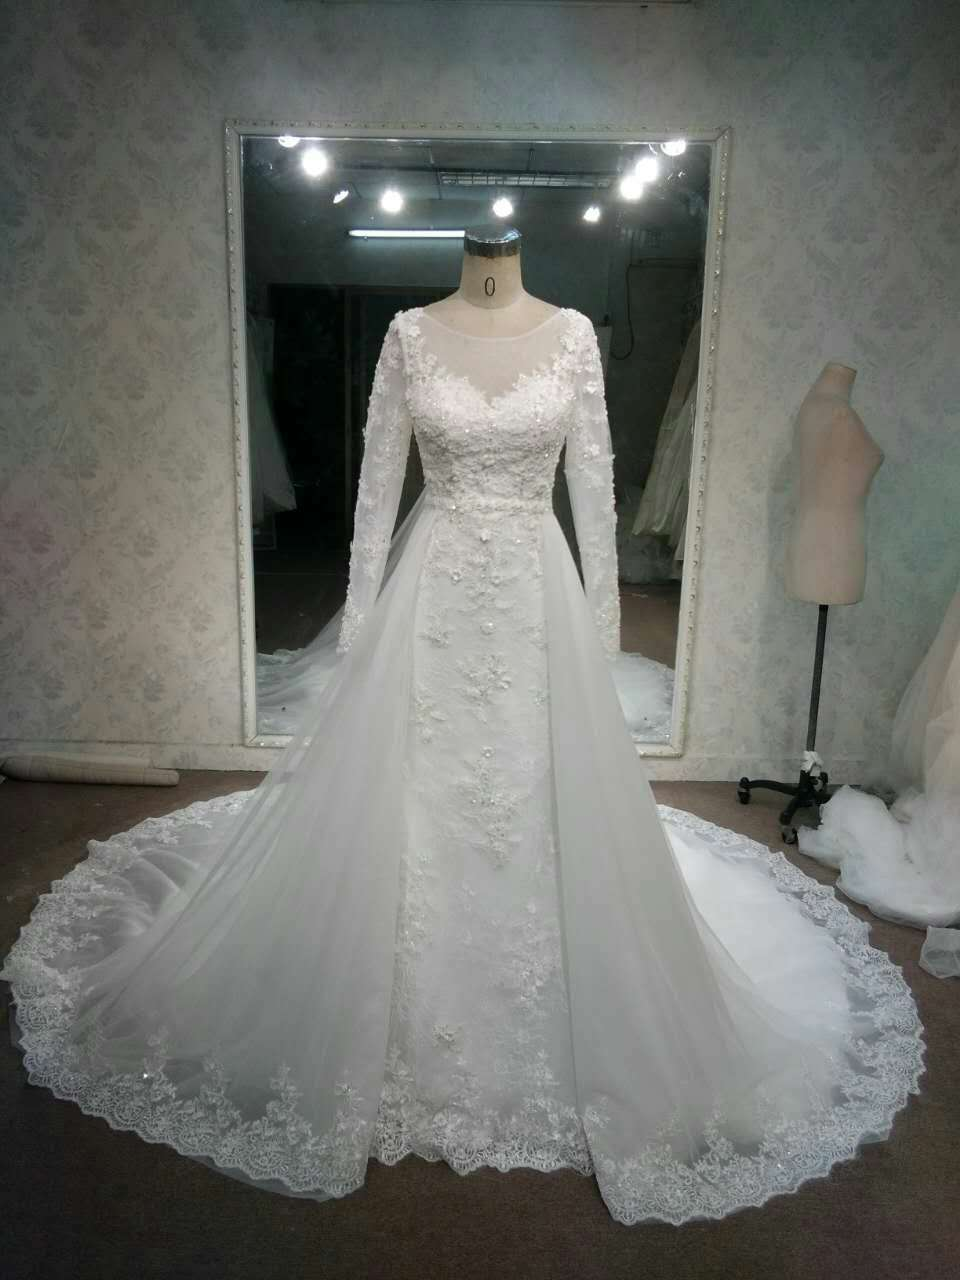 ec683cb1f5 Style# LaceOverskirtWeddingGownswithLongSleeves DariusCordell · Style Lace  bridal ...